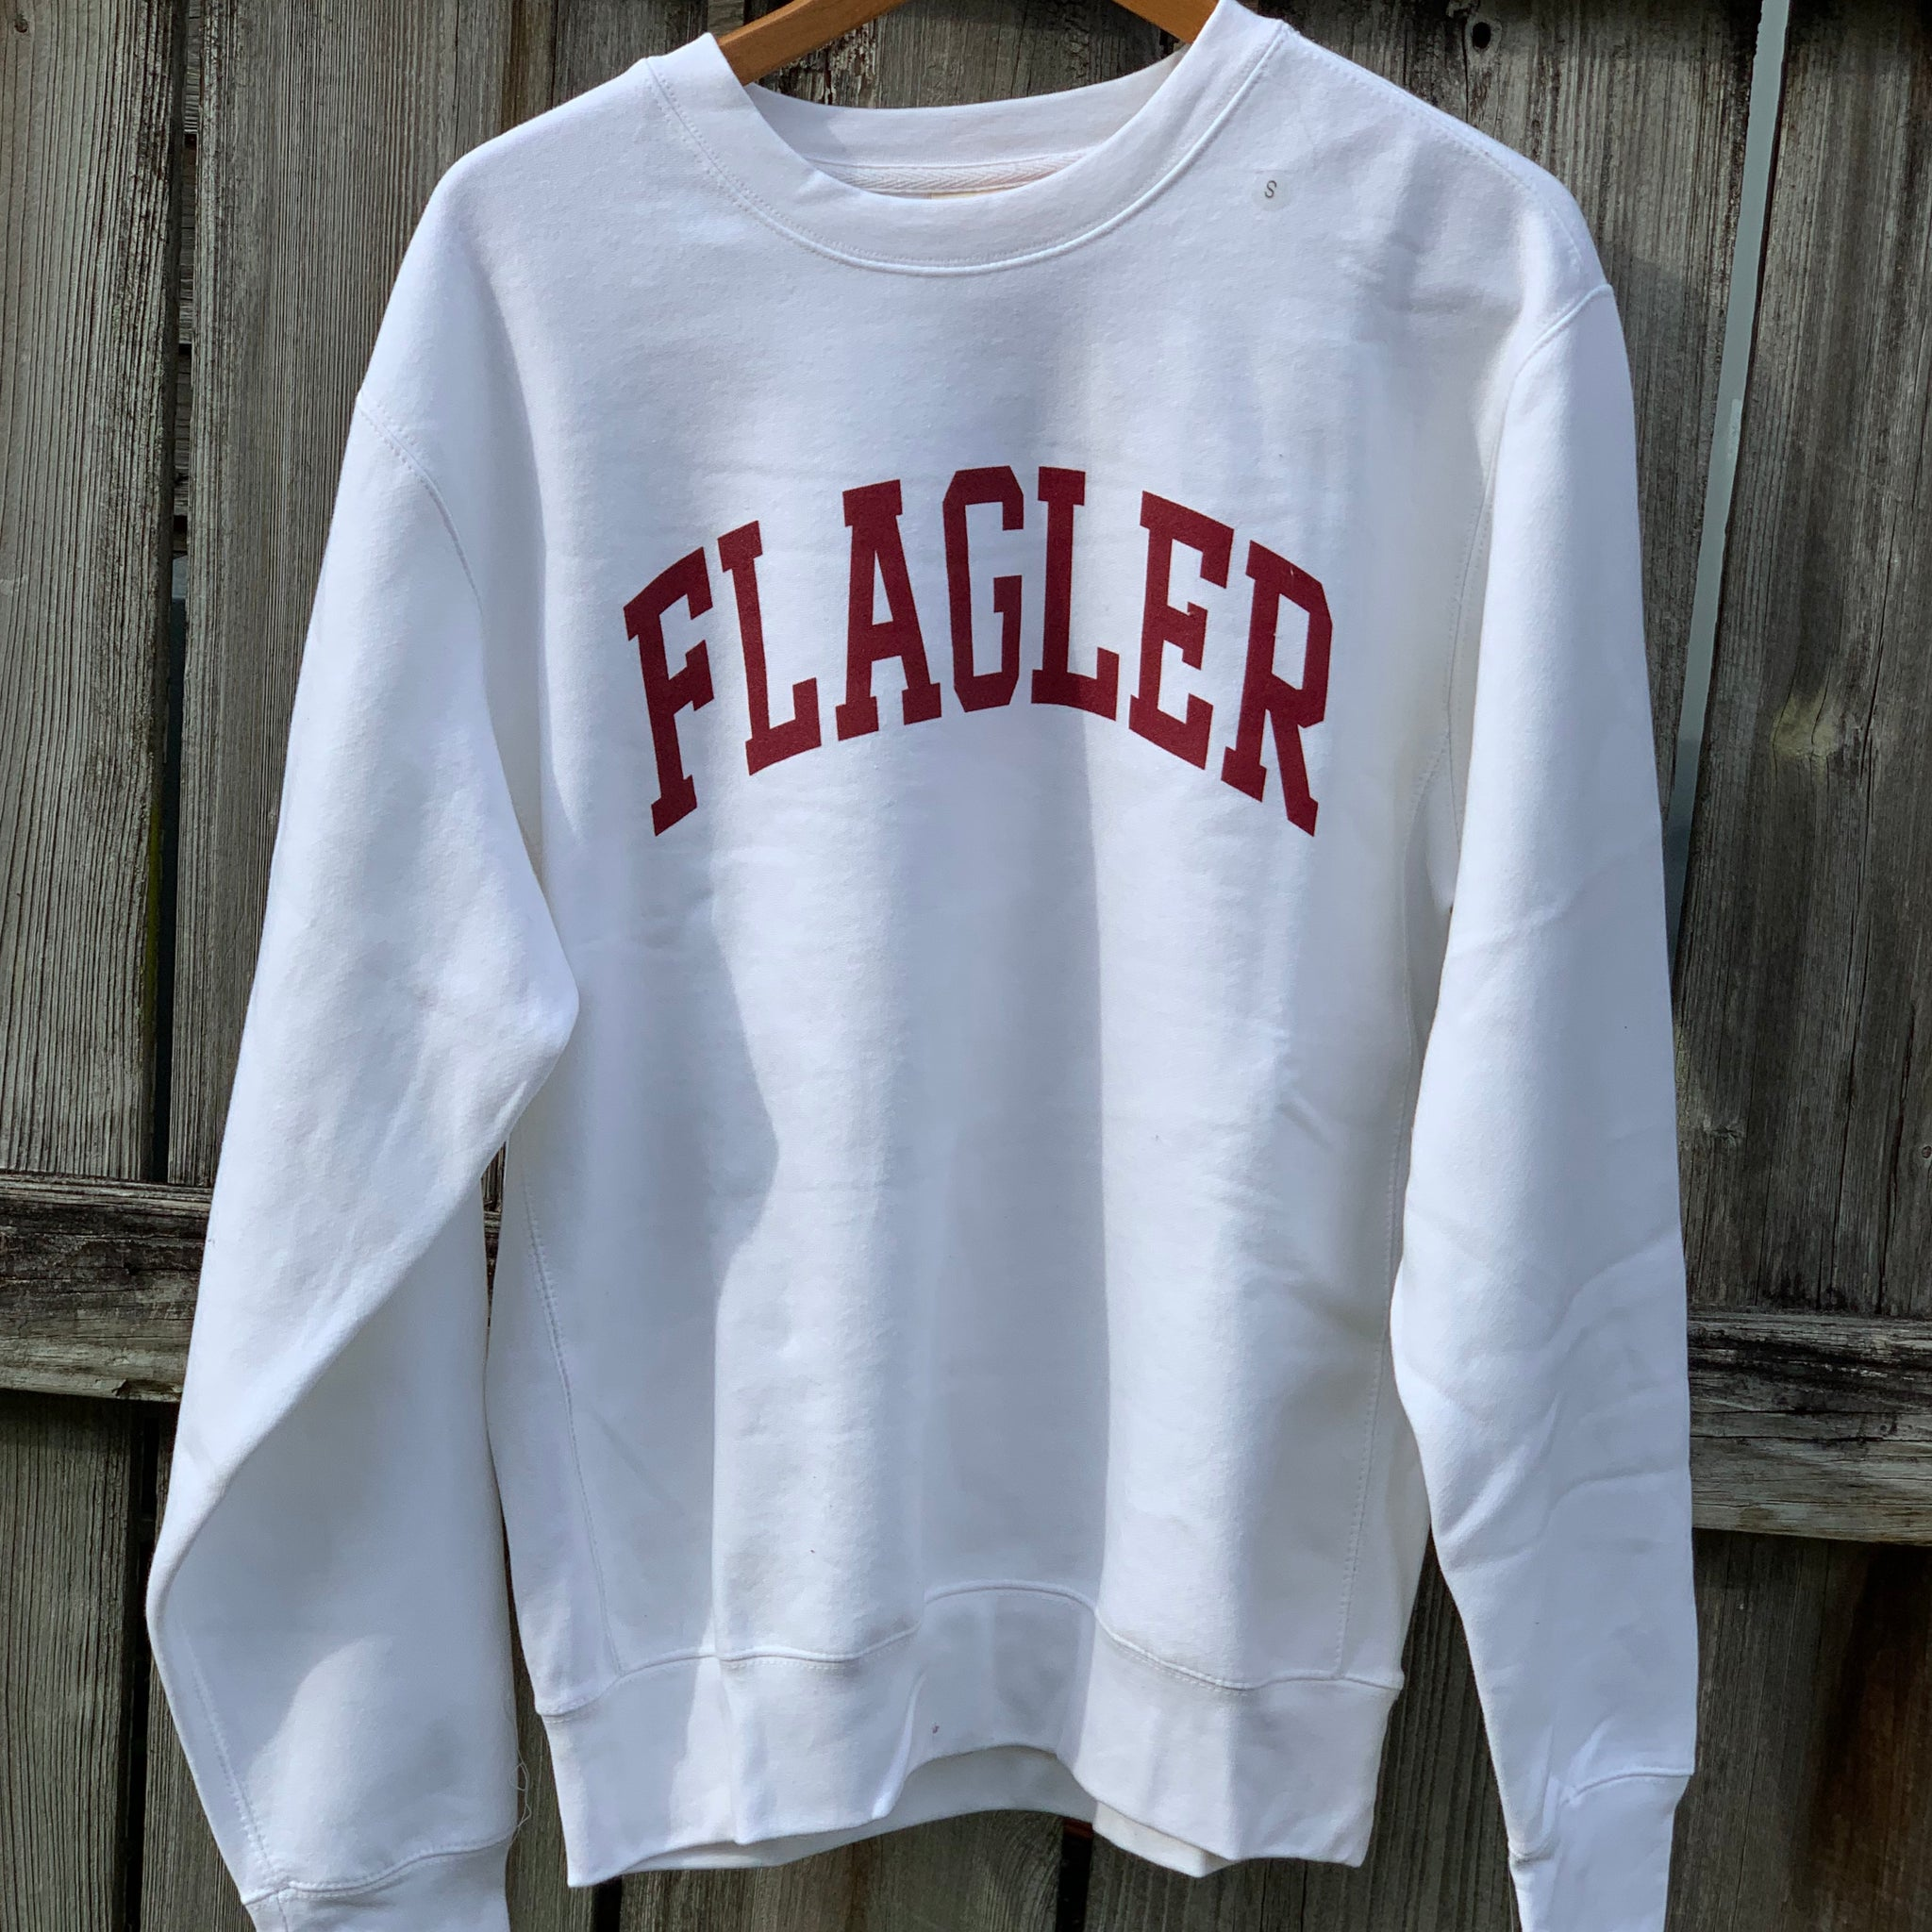 white crew with Flagler printed in red across the chest